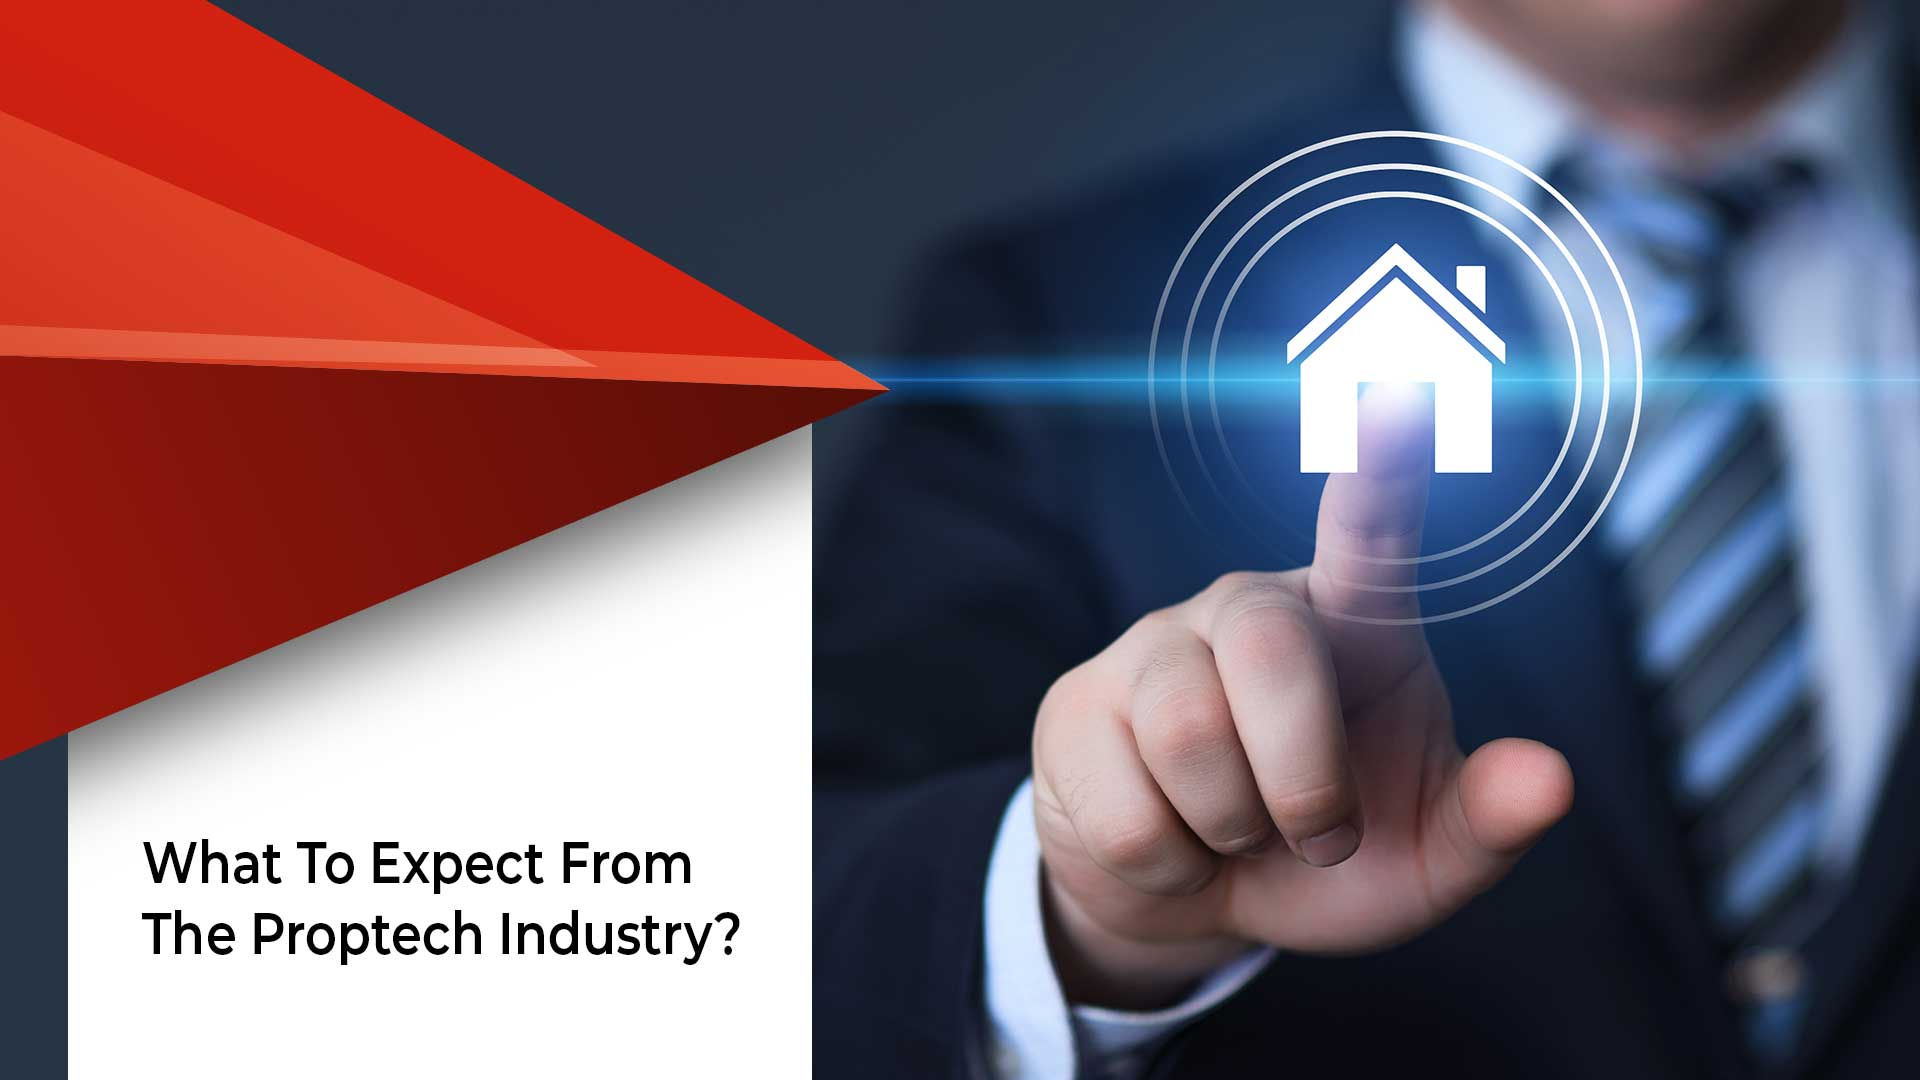 Top 8 PropTech Predictions For The Year 2019